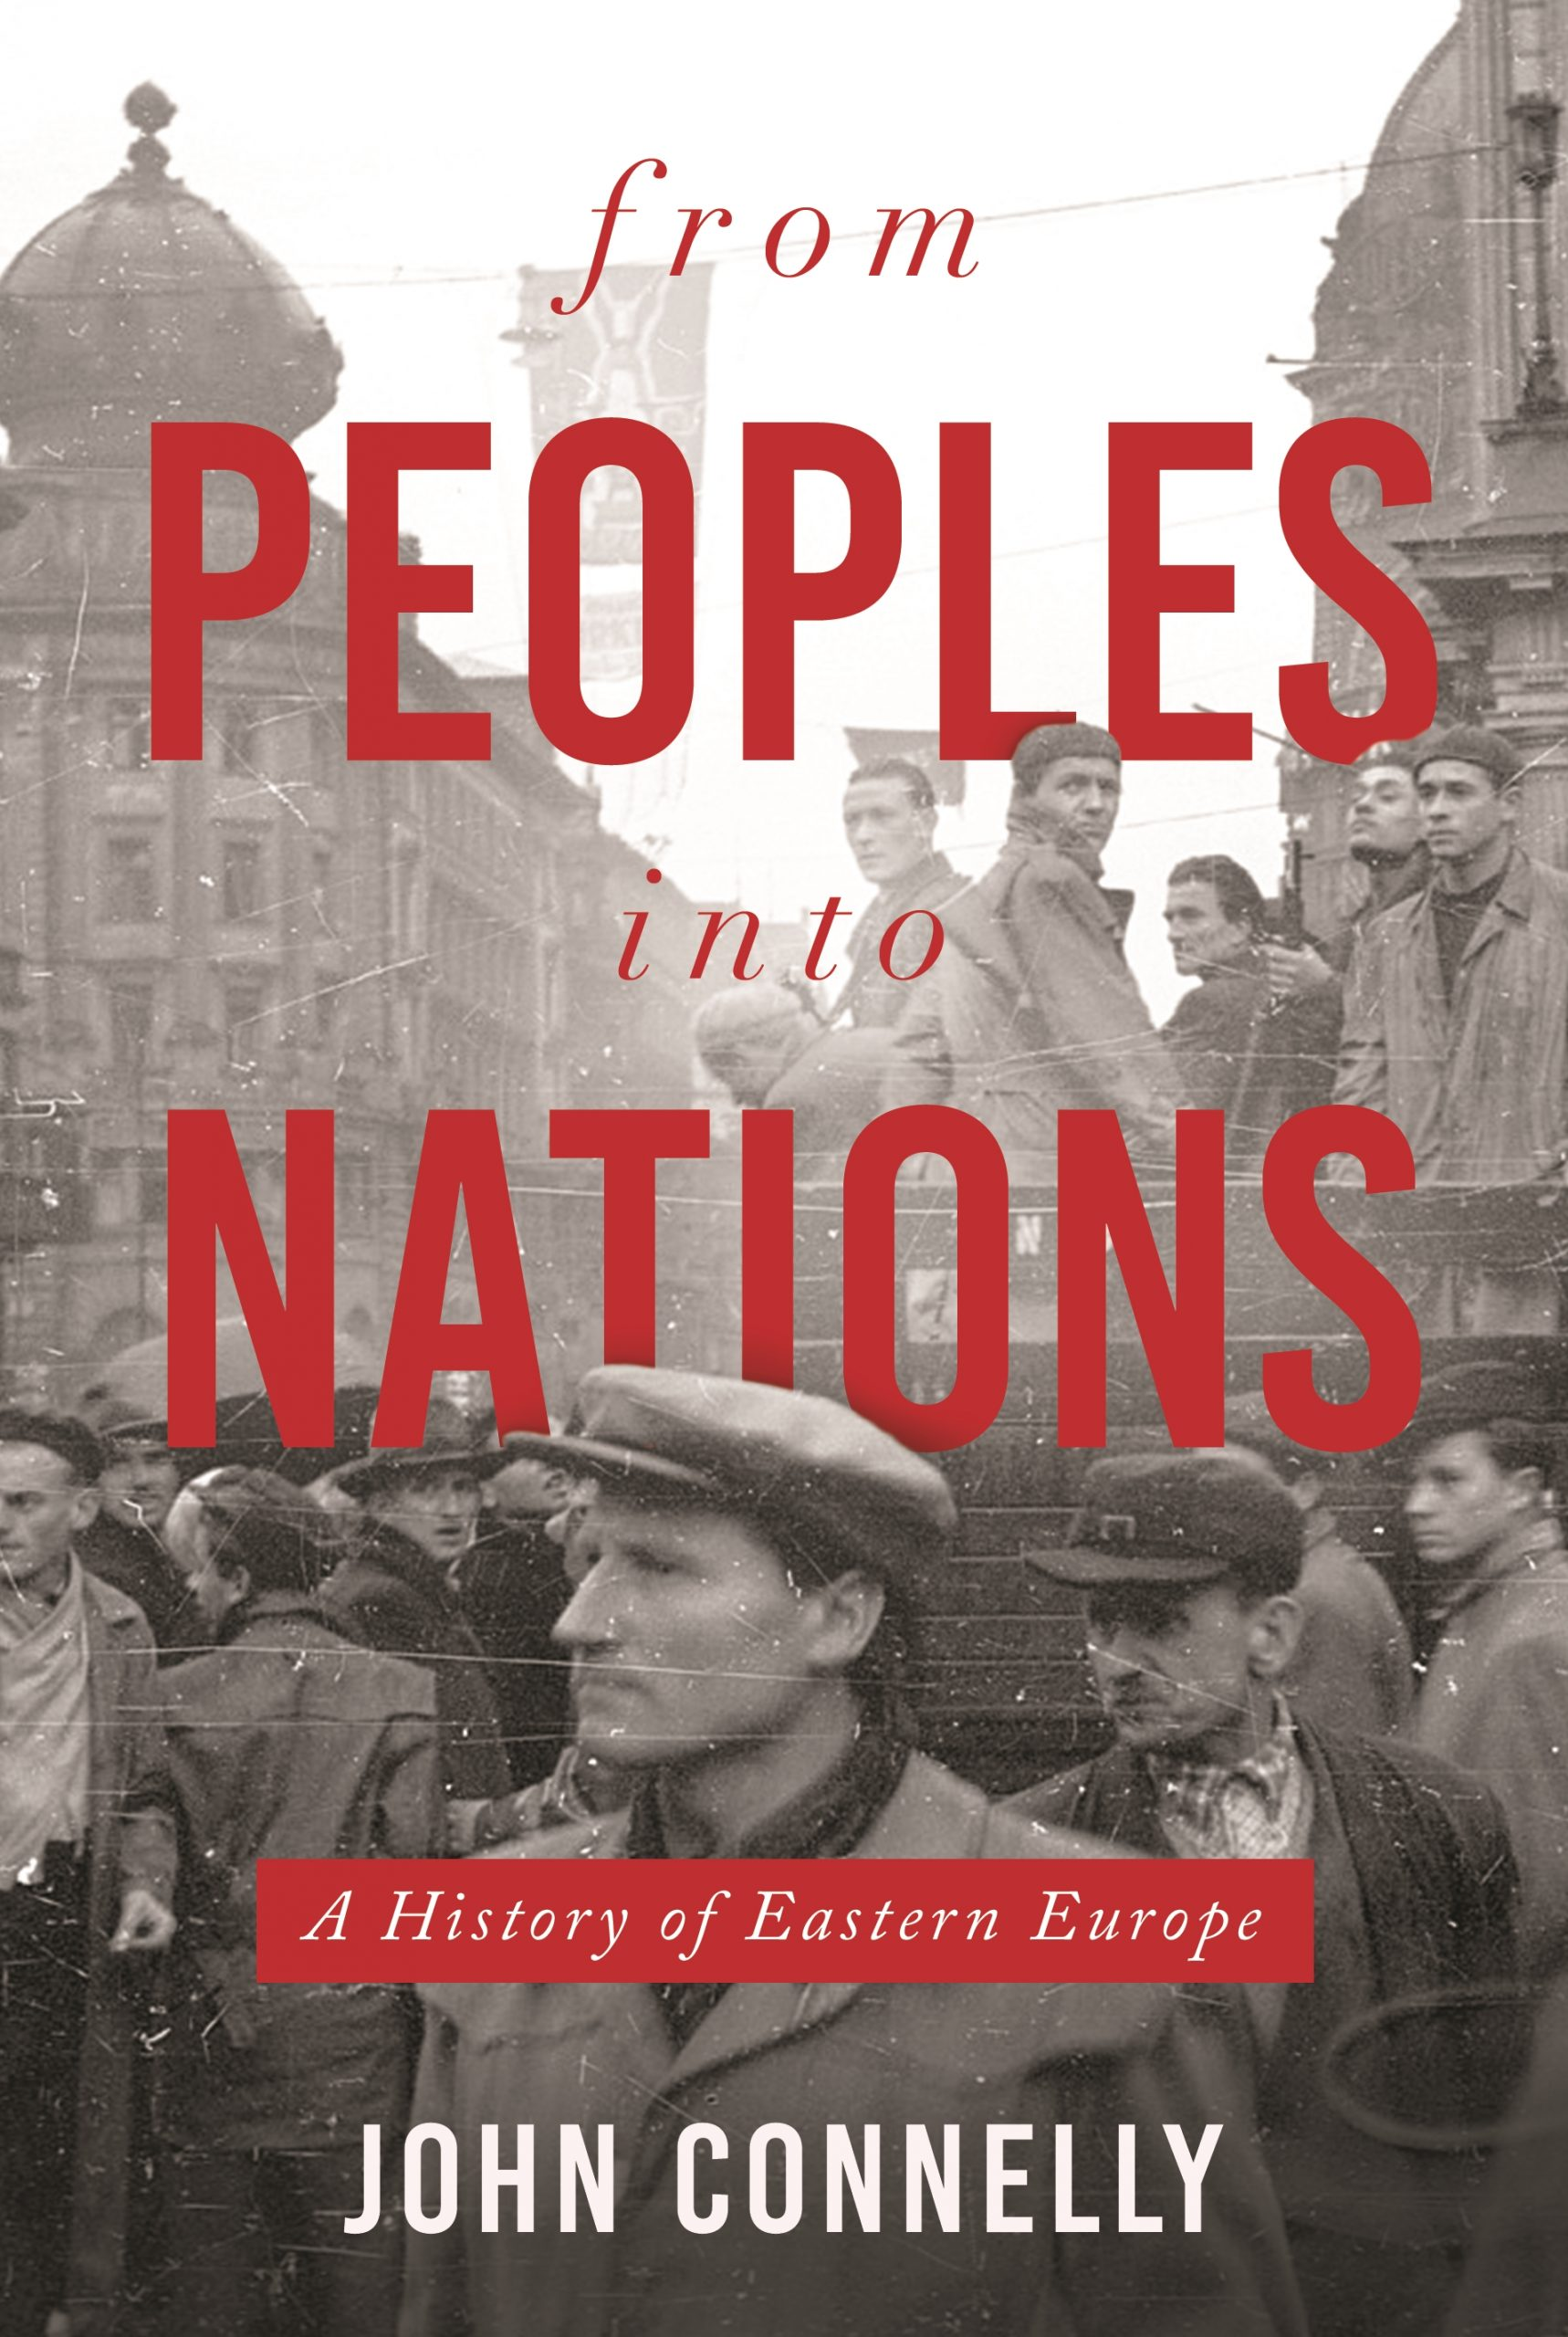 John Connelly. From Peoples into Nations: A History of Eastern Europe.